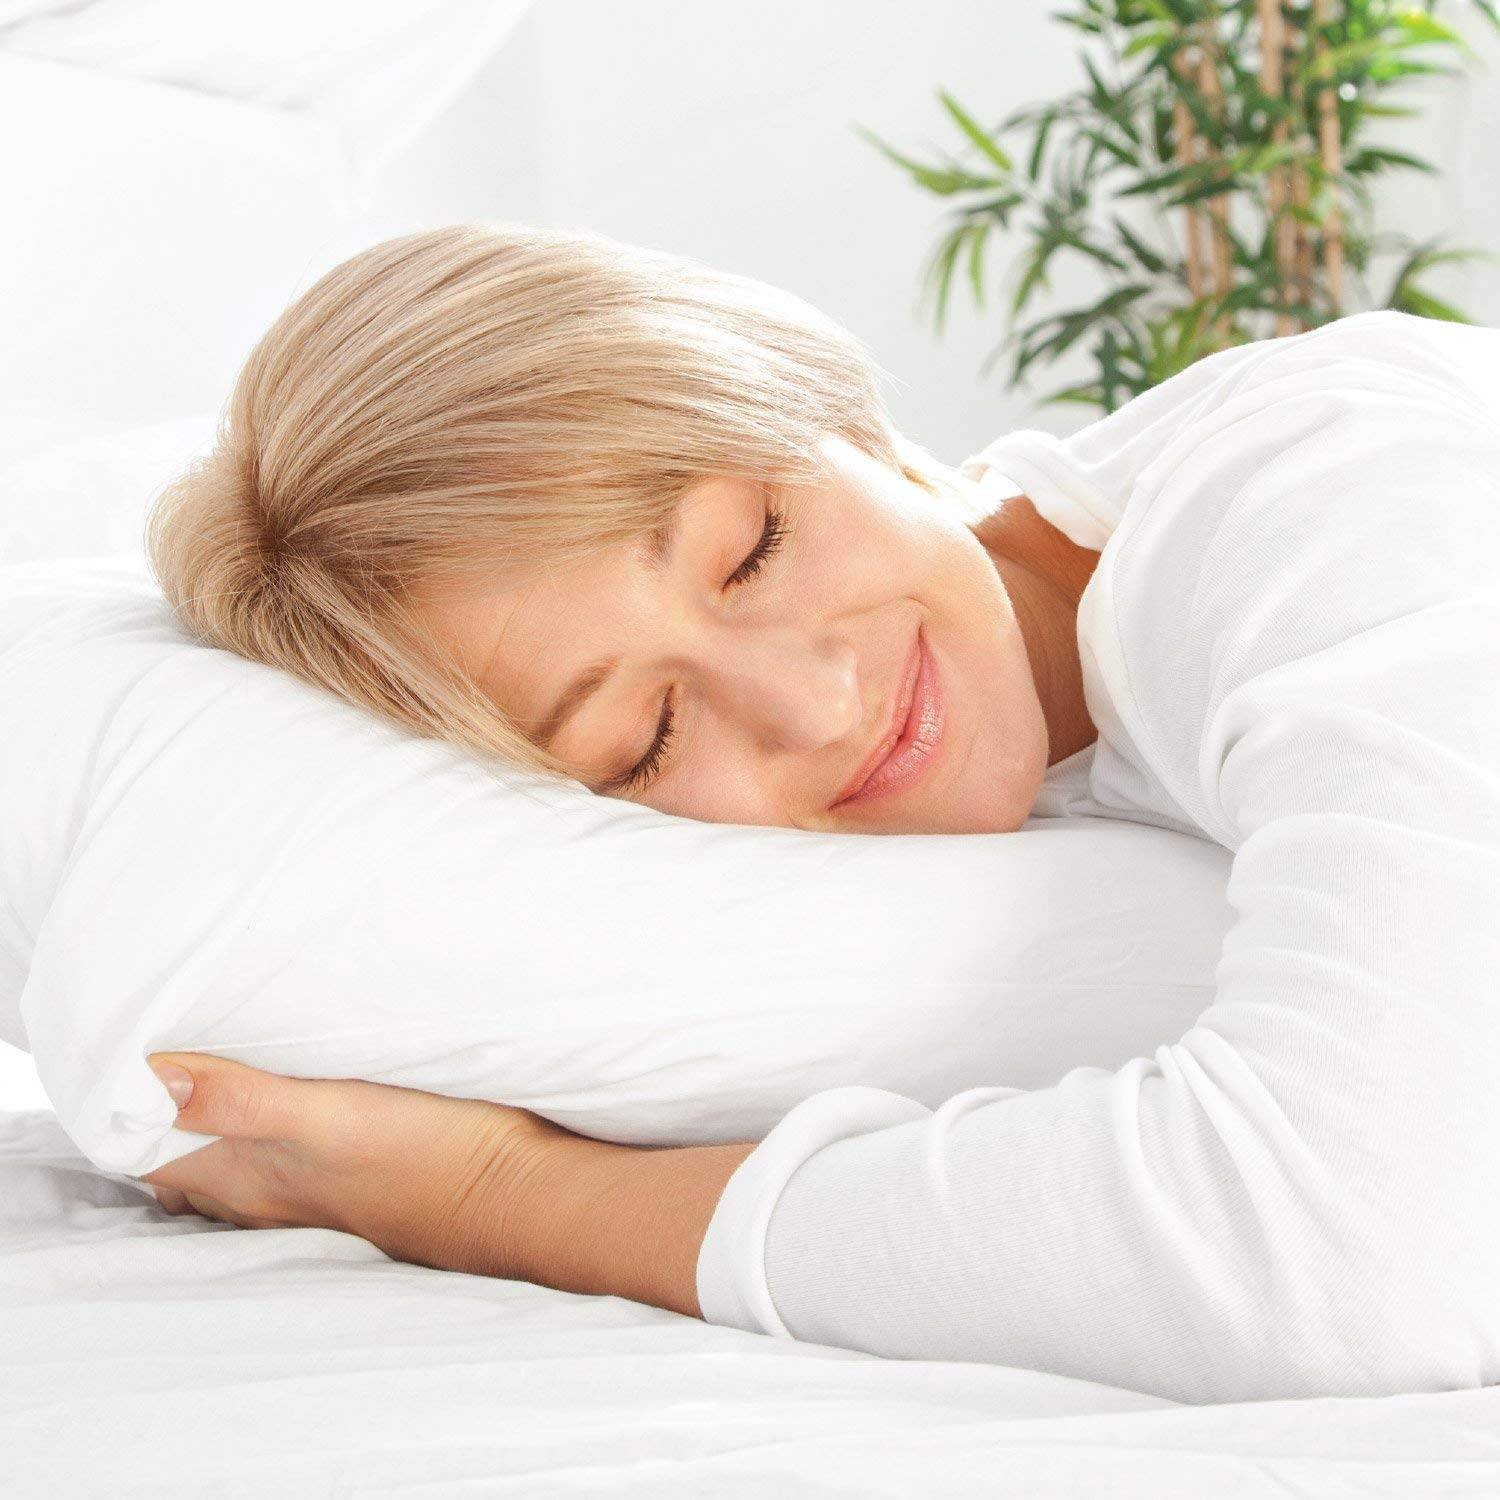 Do Hypoallergenic Pillows Work?